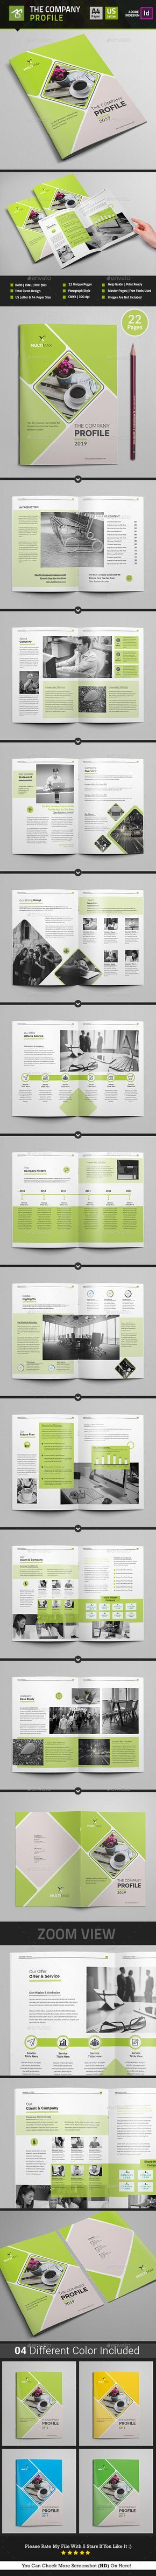 Company Profile Brochure Template InDesign INDD. Download here: https://graphicriver.net/item/company-profile-brochure/17208987?ref=ksioks